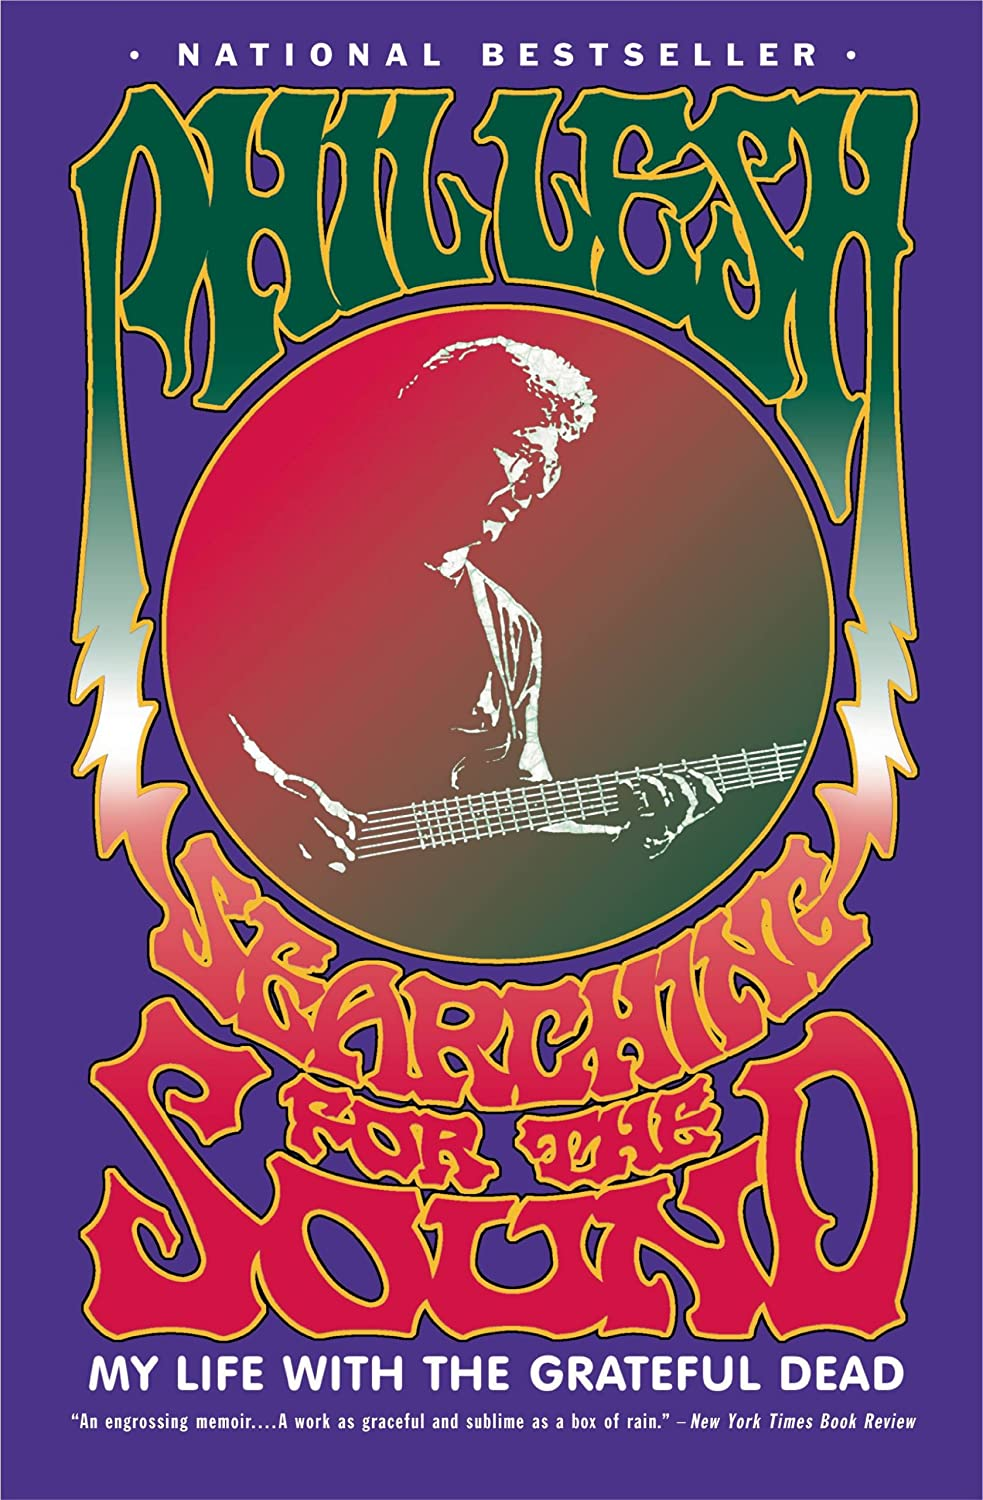 Phil Lesh Searching for the Sound: My Life in the Grateful Dead